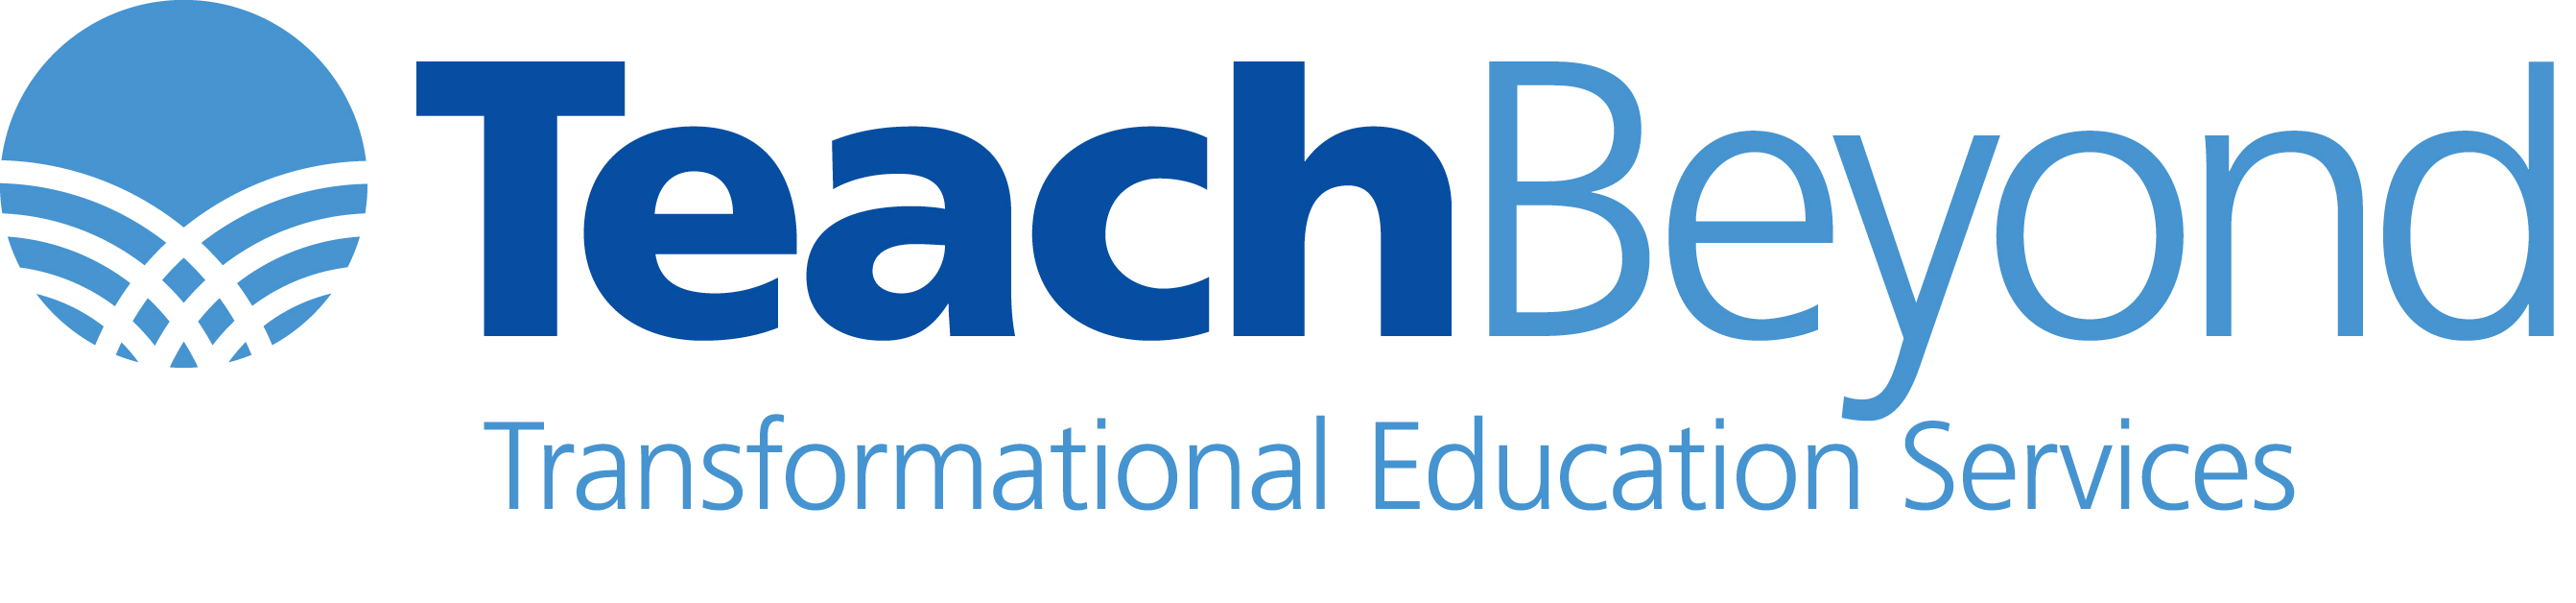 TeachBeyond-logo